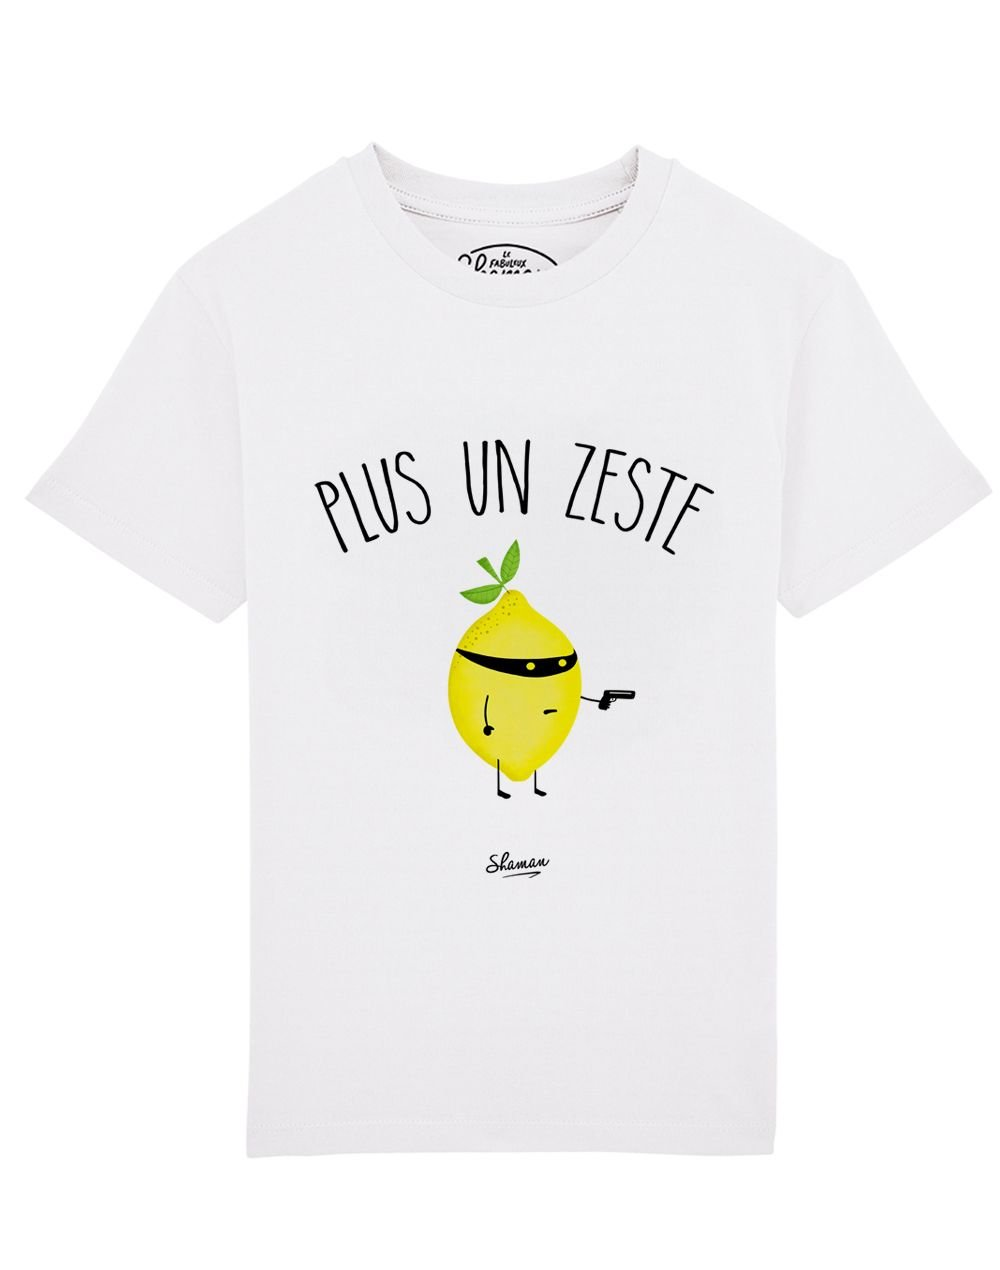 Tee-shirt Plus un zeste